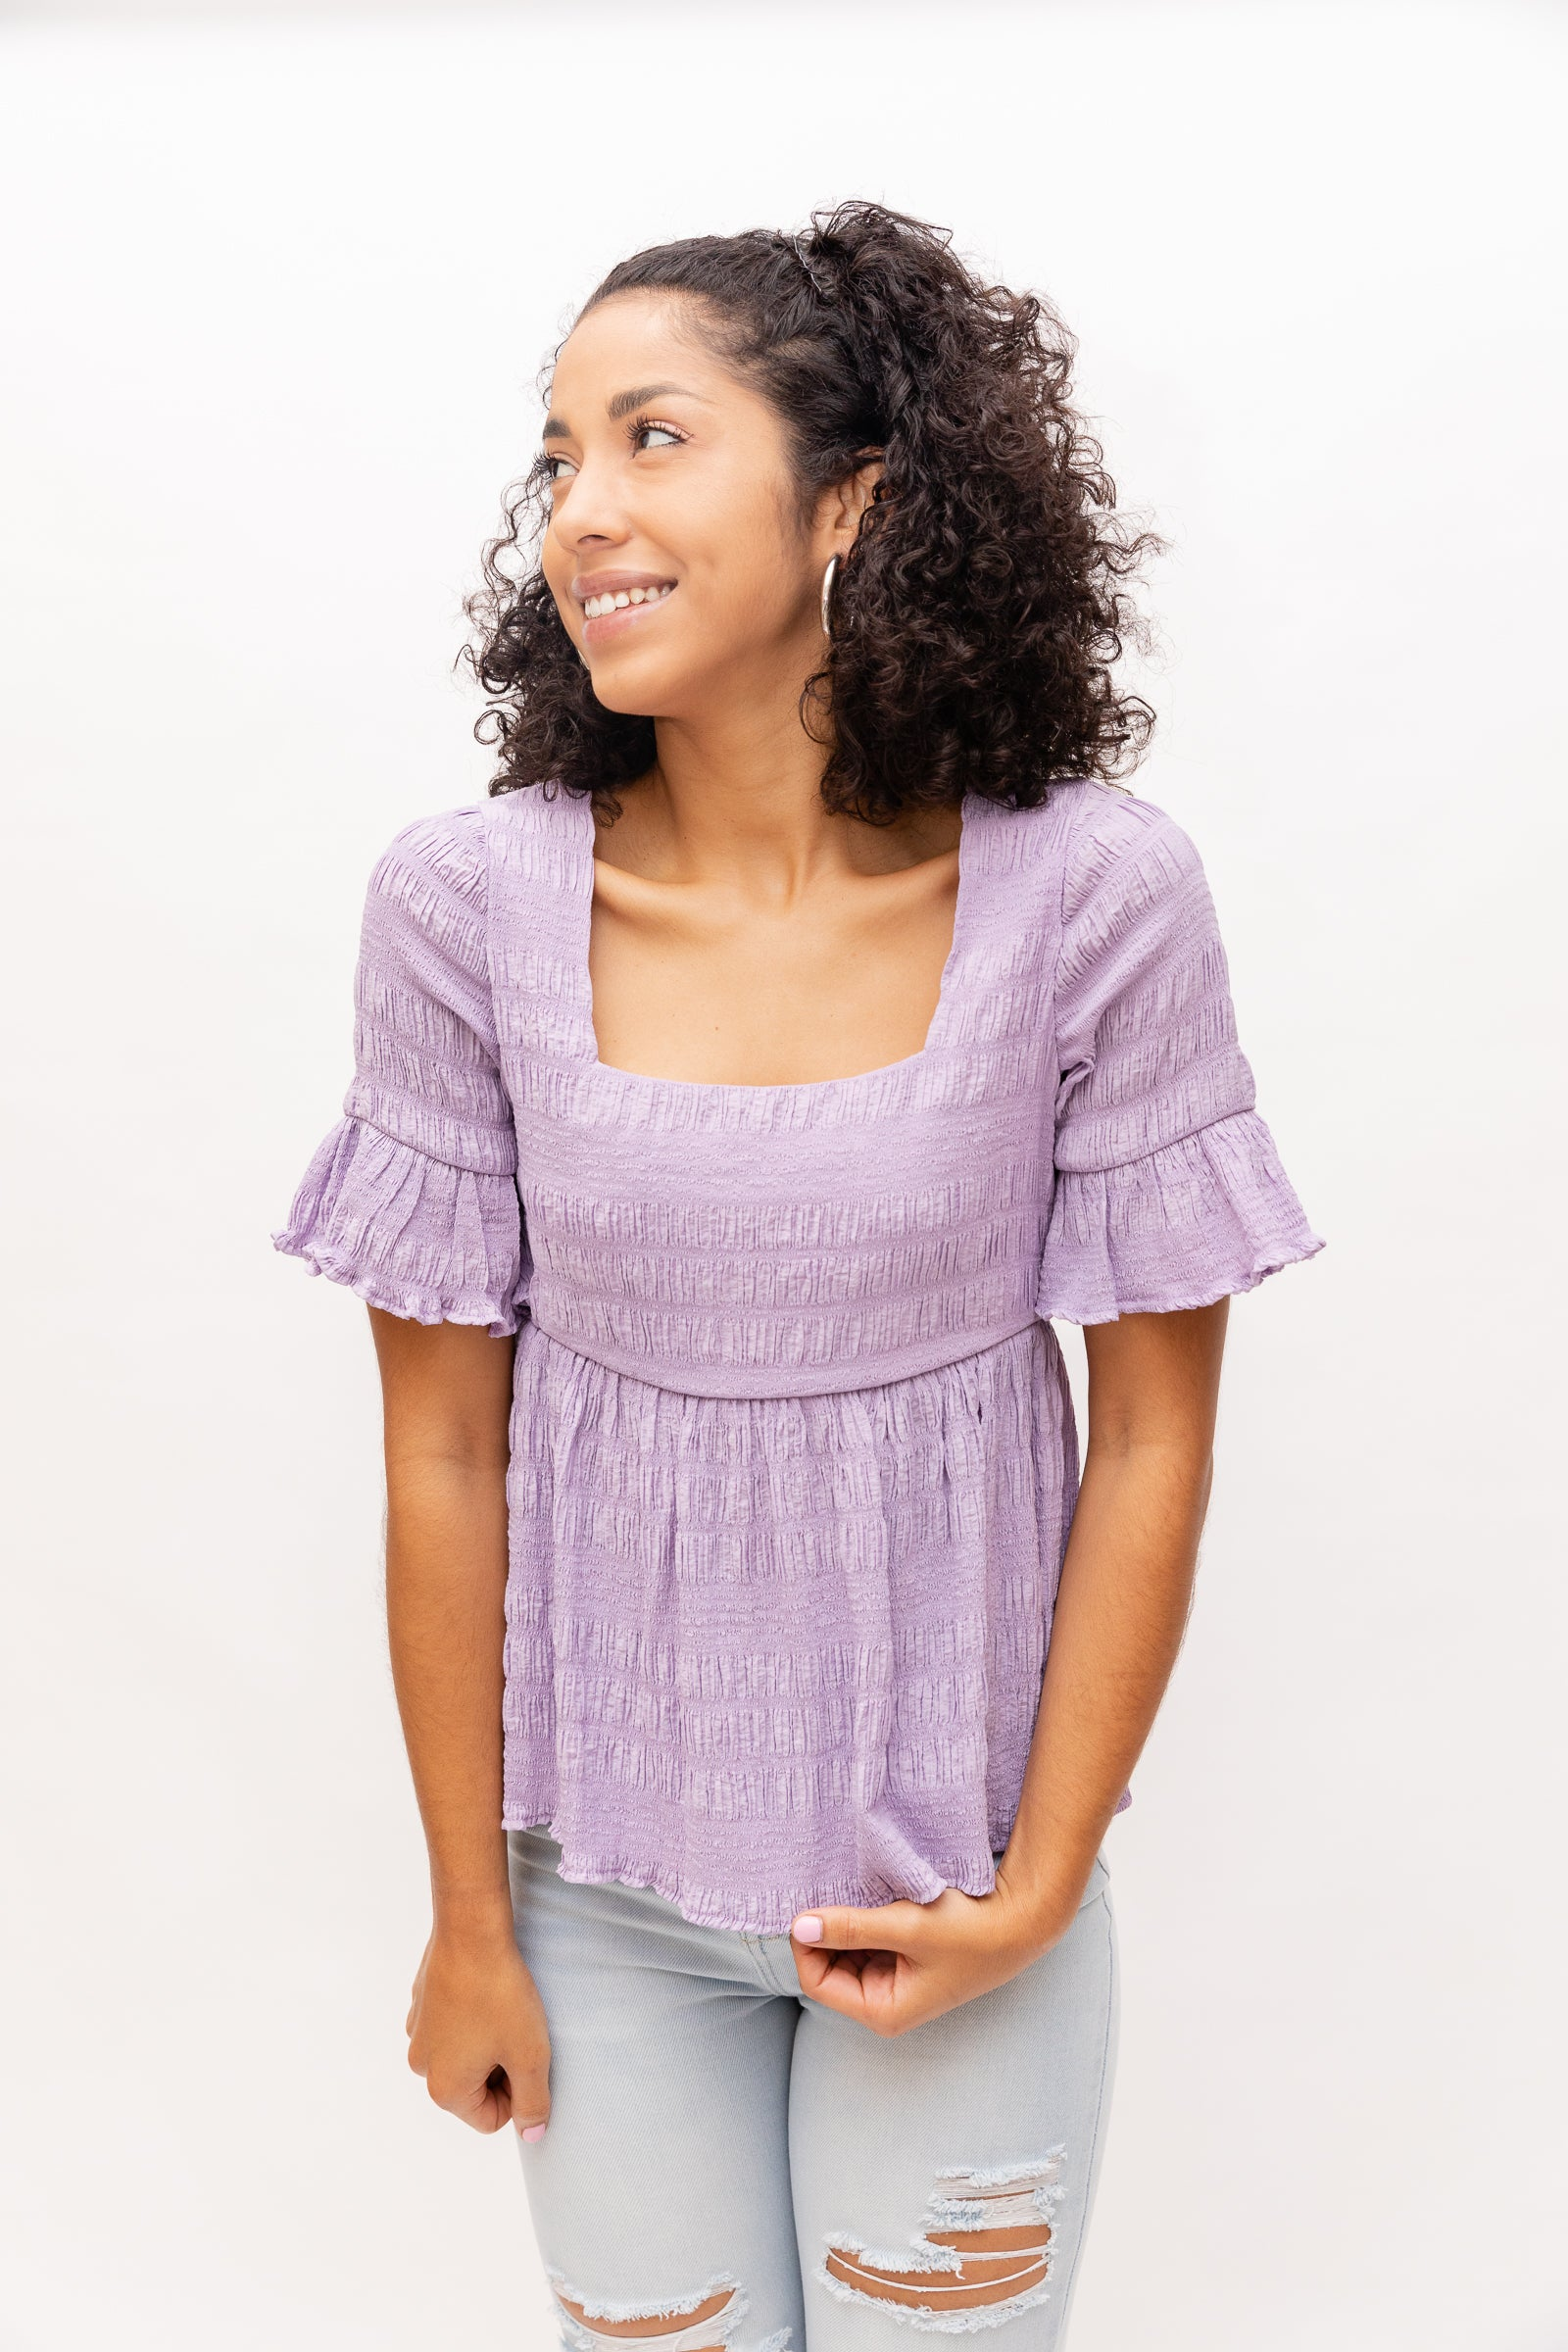 Short ruffle cuffed sleeves attach to a fitted neckline on a textured and relaxed bodice before flaring out into a baby doll peplum hem.